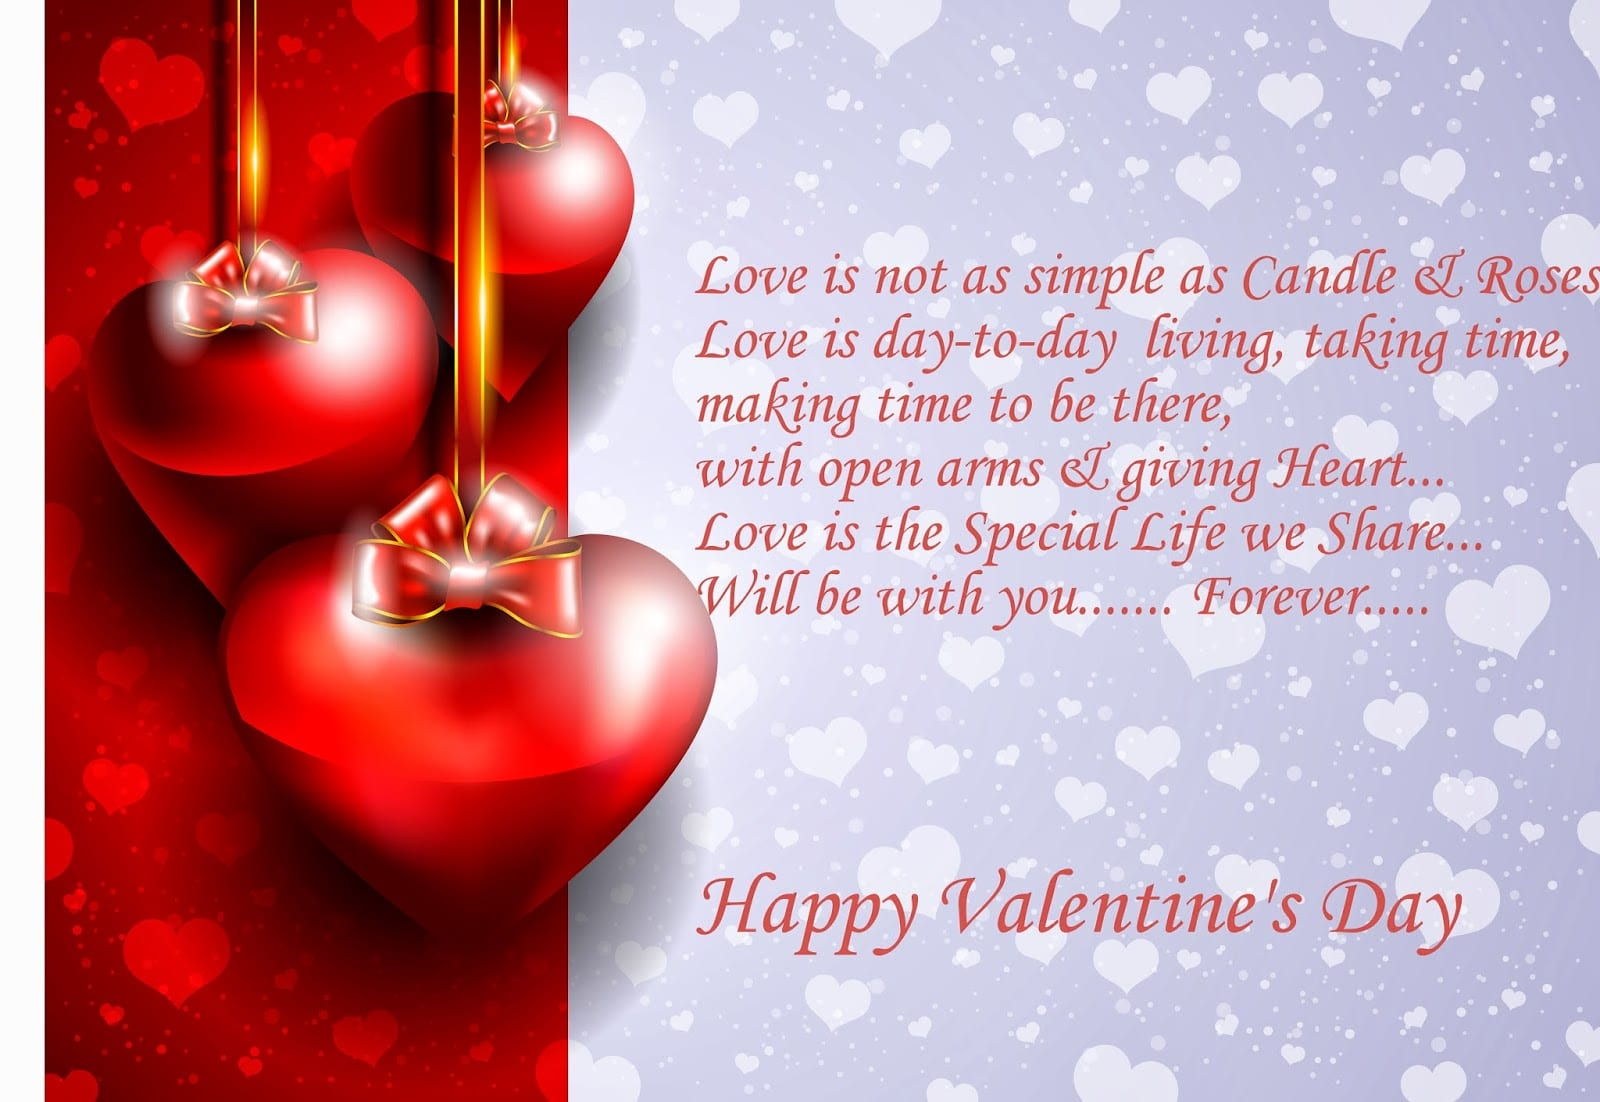 Happy Valentine's Day Wishes Greeting Cards for all